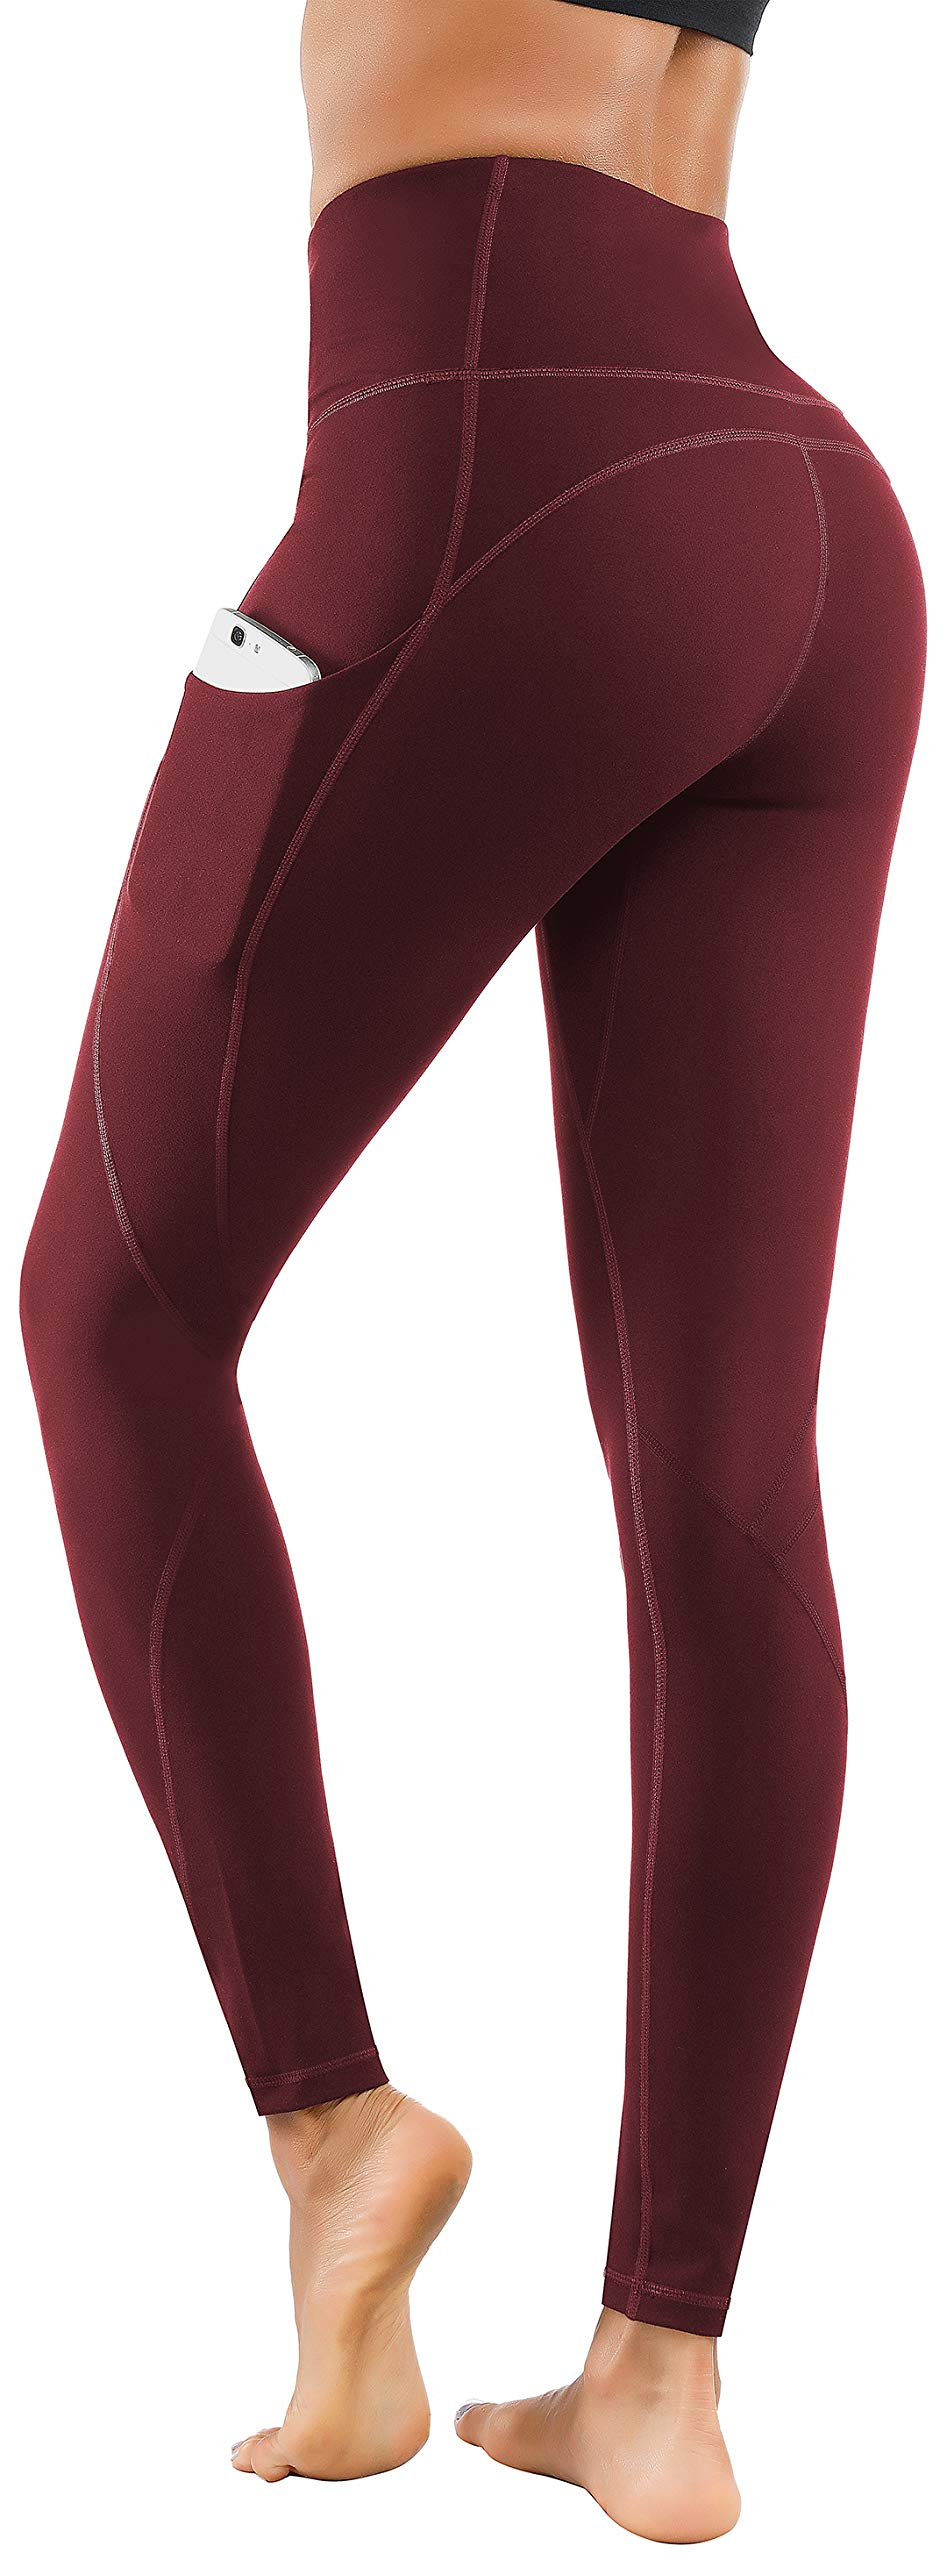 Lingswallow High Waist Yoga Pants - Yoga Pants with Pockets Tummy Control, 4 Ways Stretch Workout Running Yoga Leggings (Bordeaux red,Small) by Lingswallow